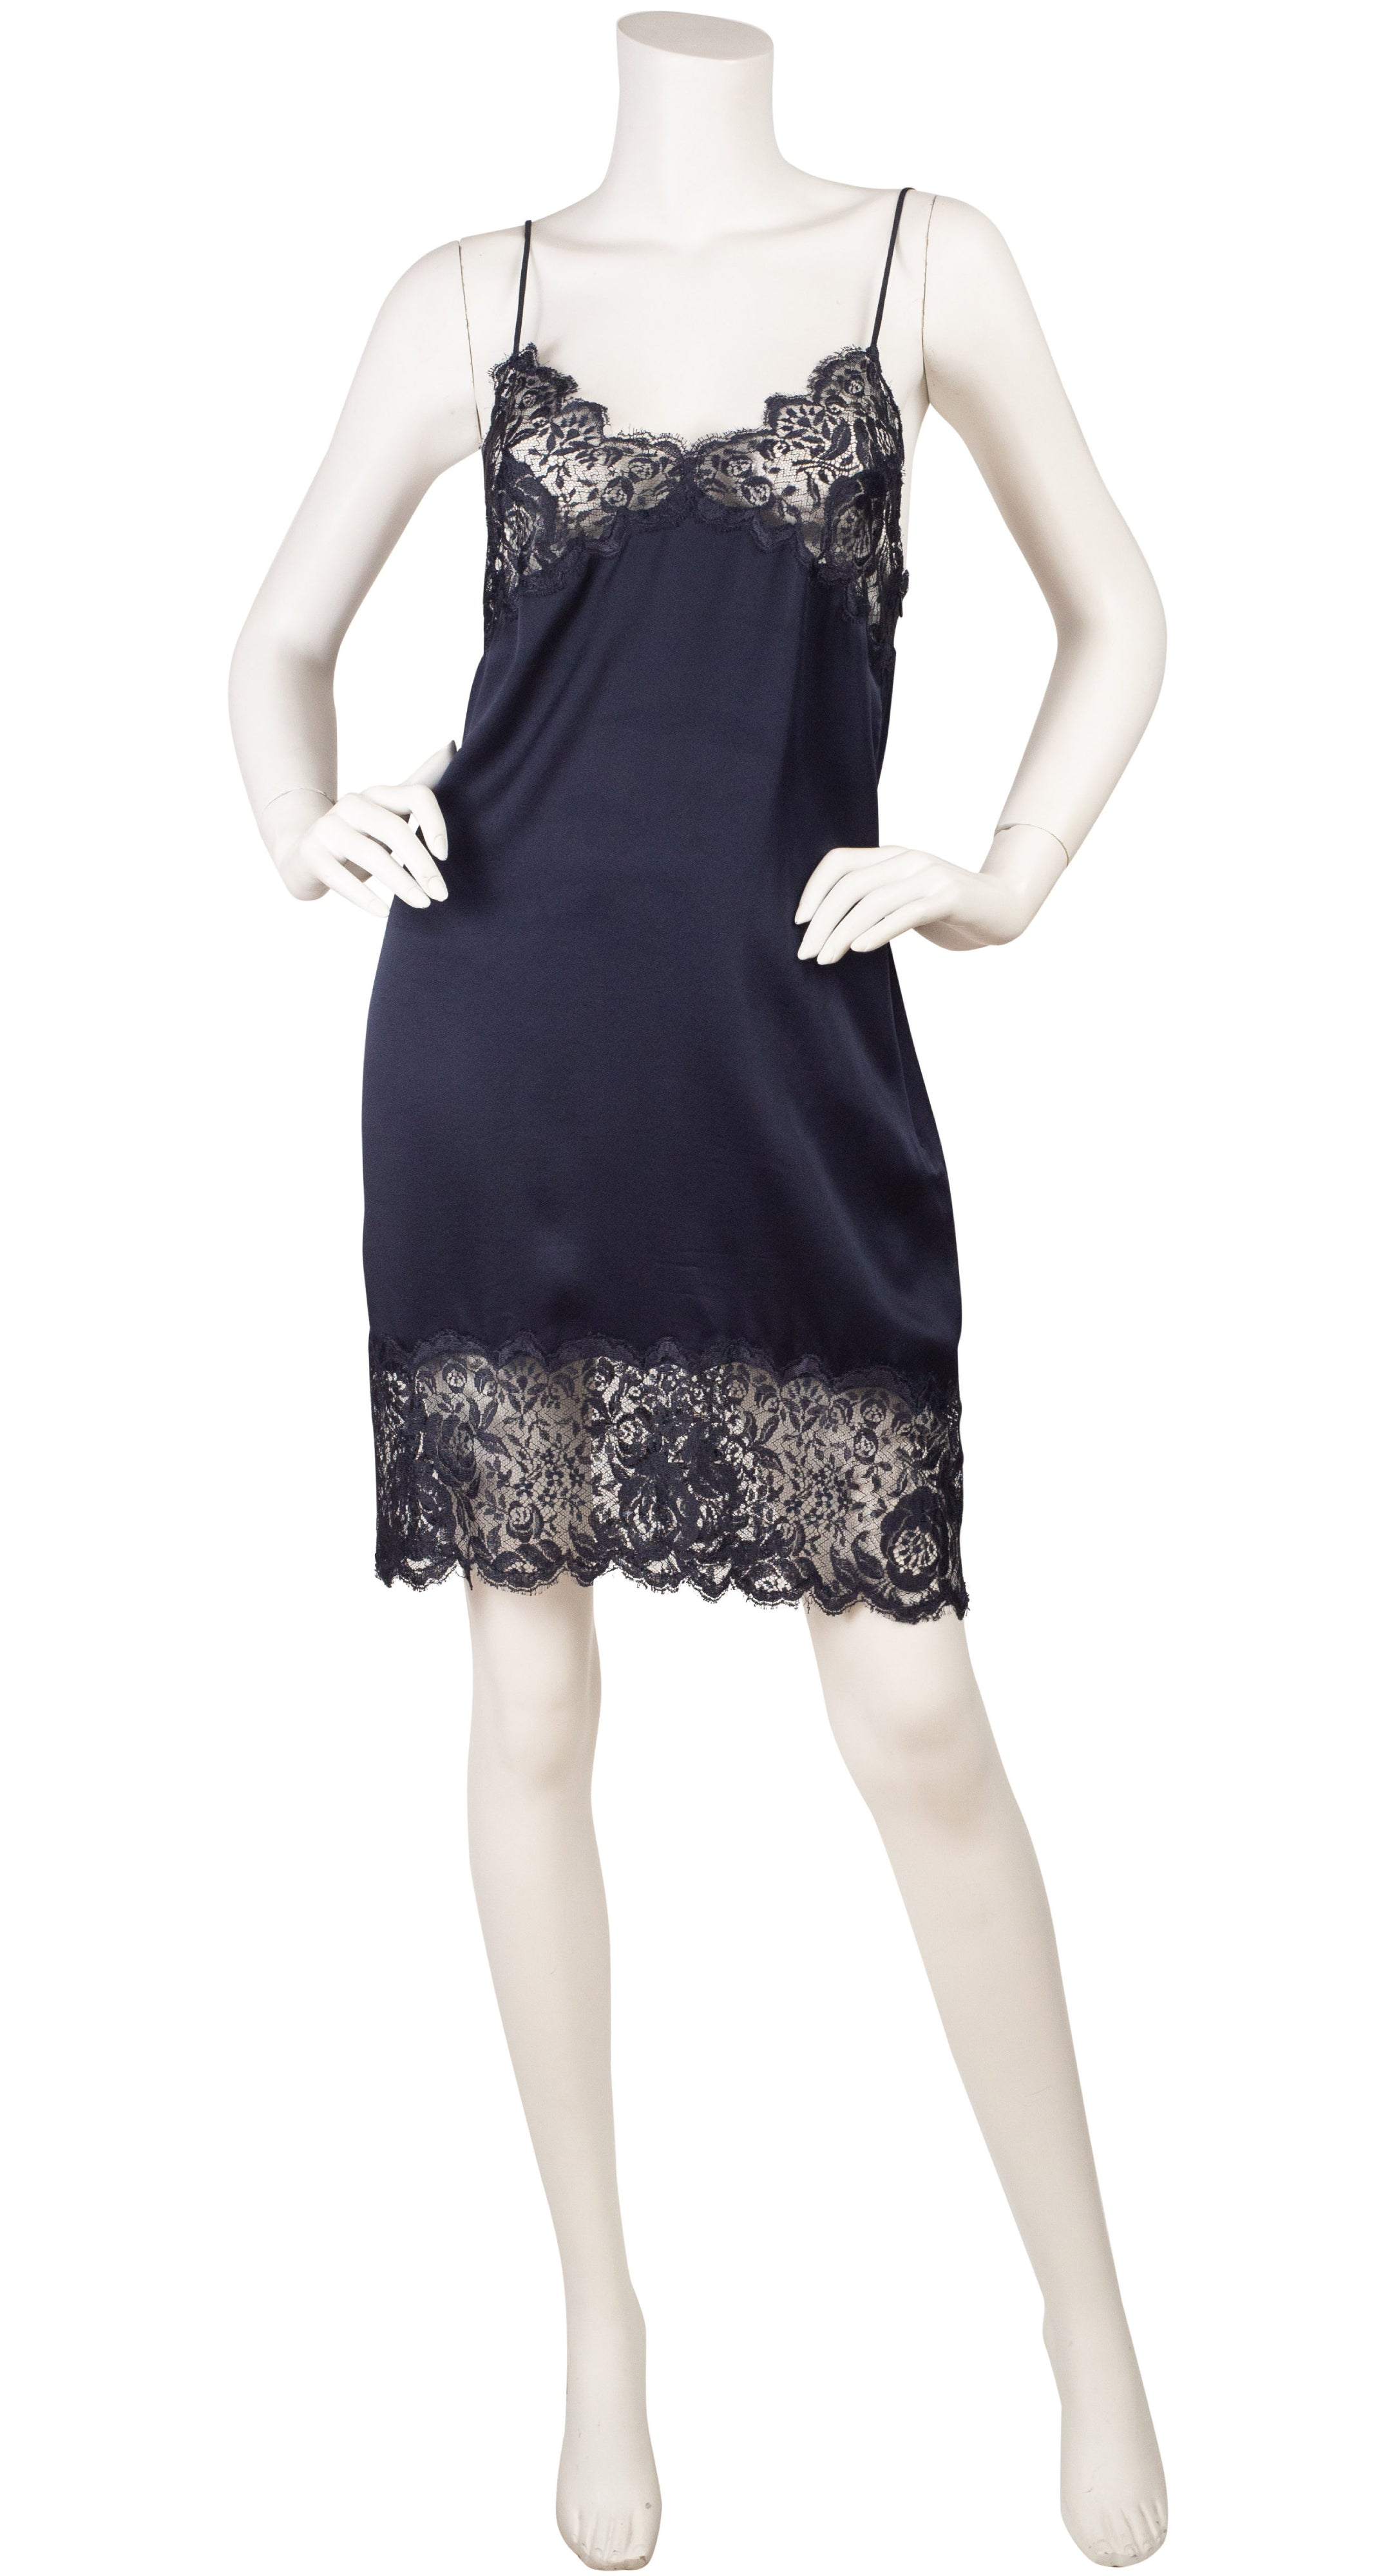 1997 S/S Runway Black Lace & Silk Slip Dress